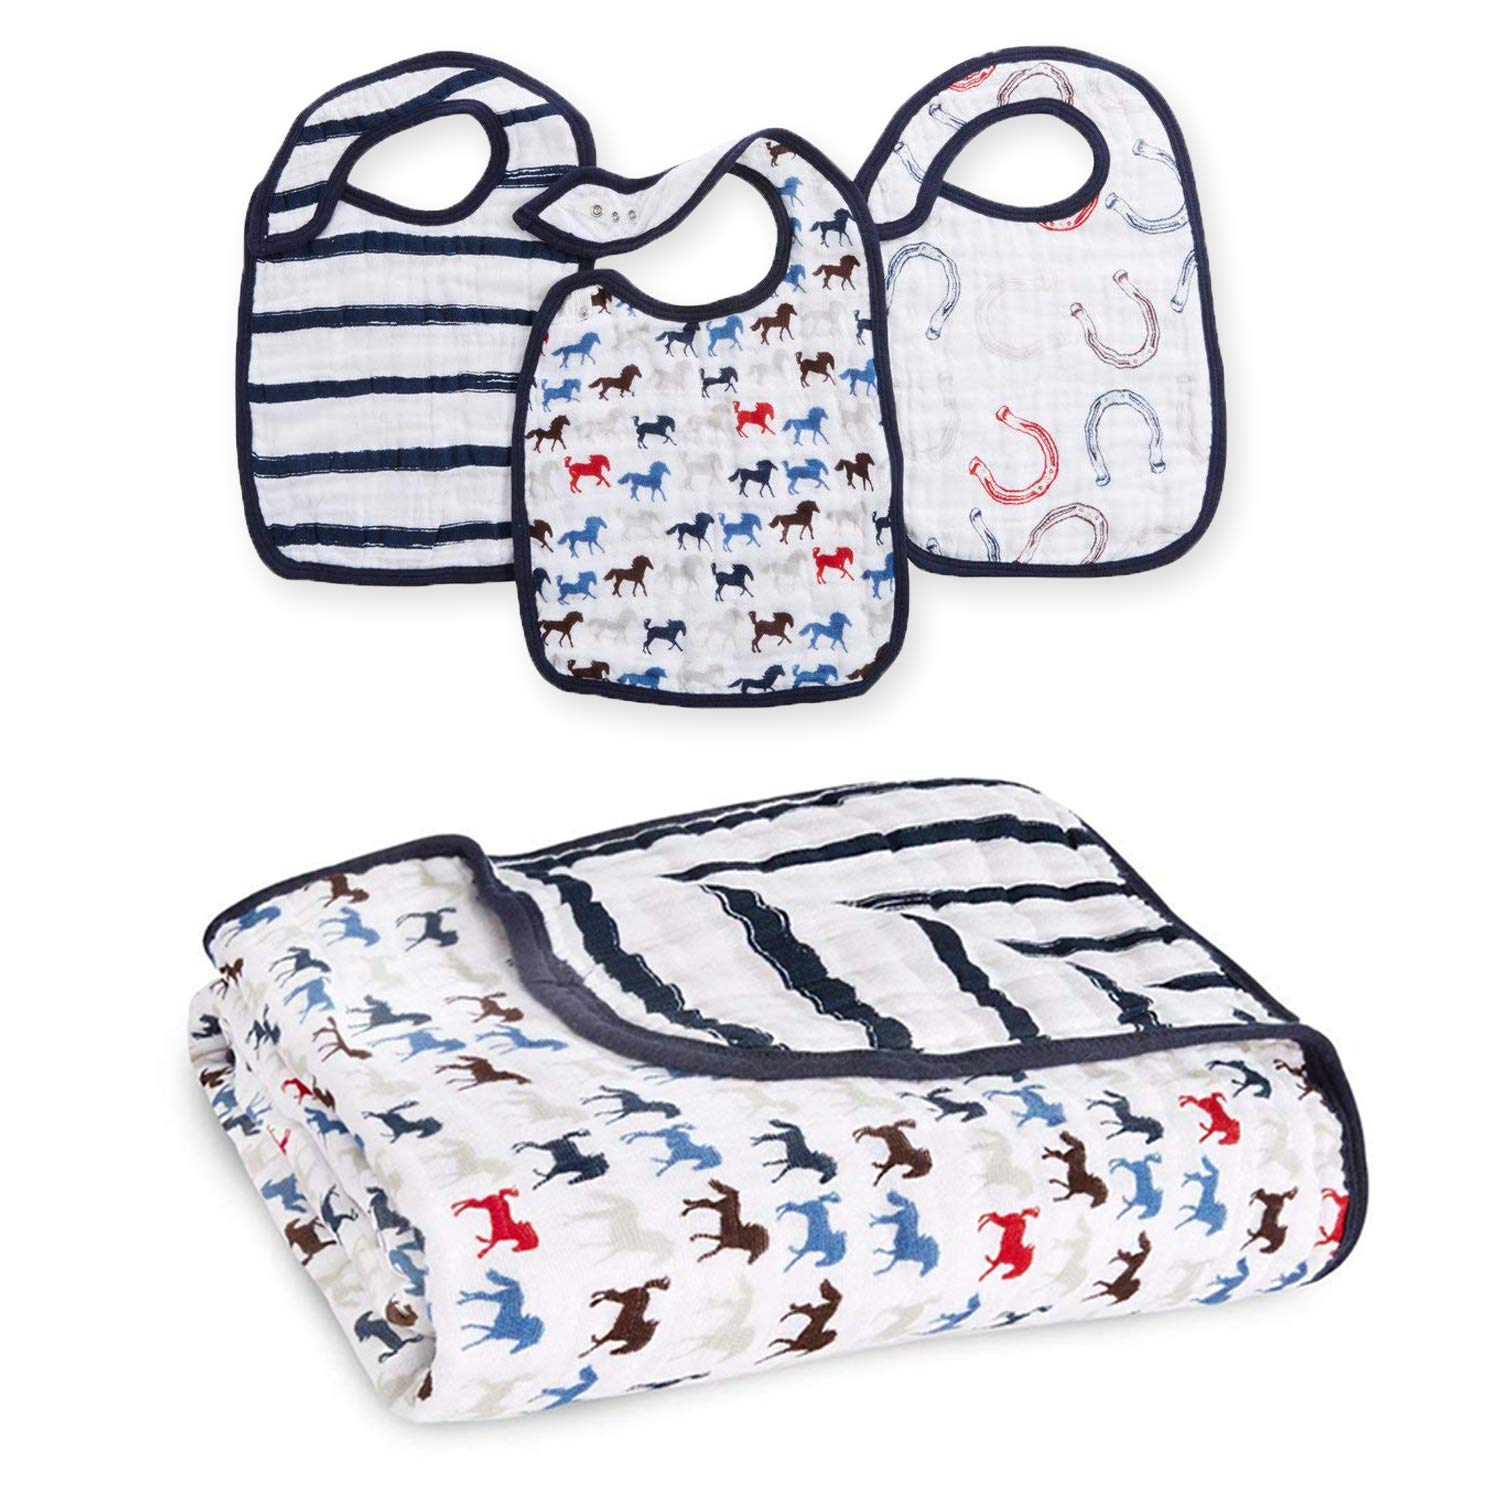 aden + anais Snap Bib and Dream Blanket Wild Horses Collection, 3 Pack Snap  Bib, 1 Dream Blanket.